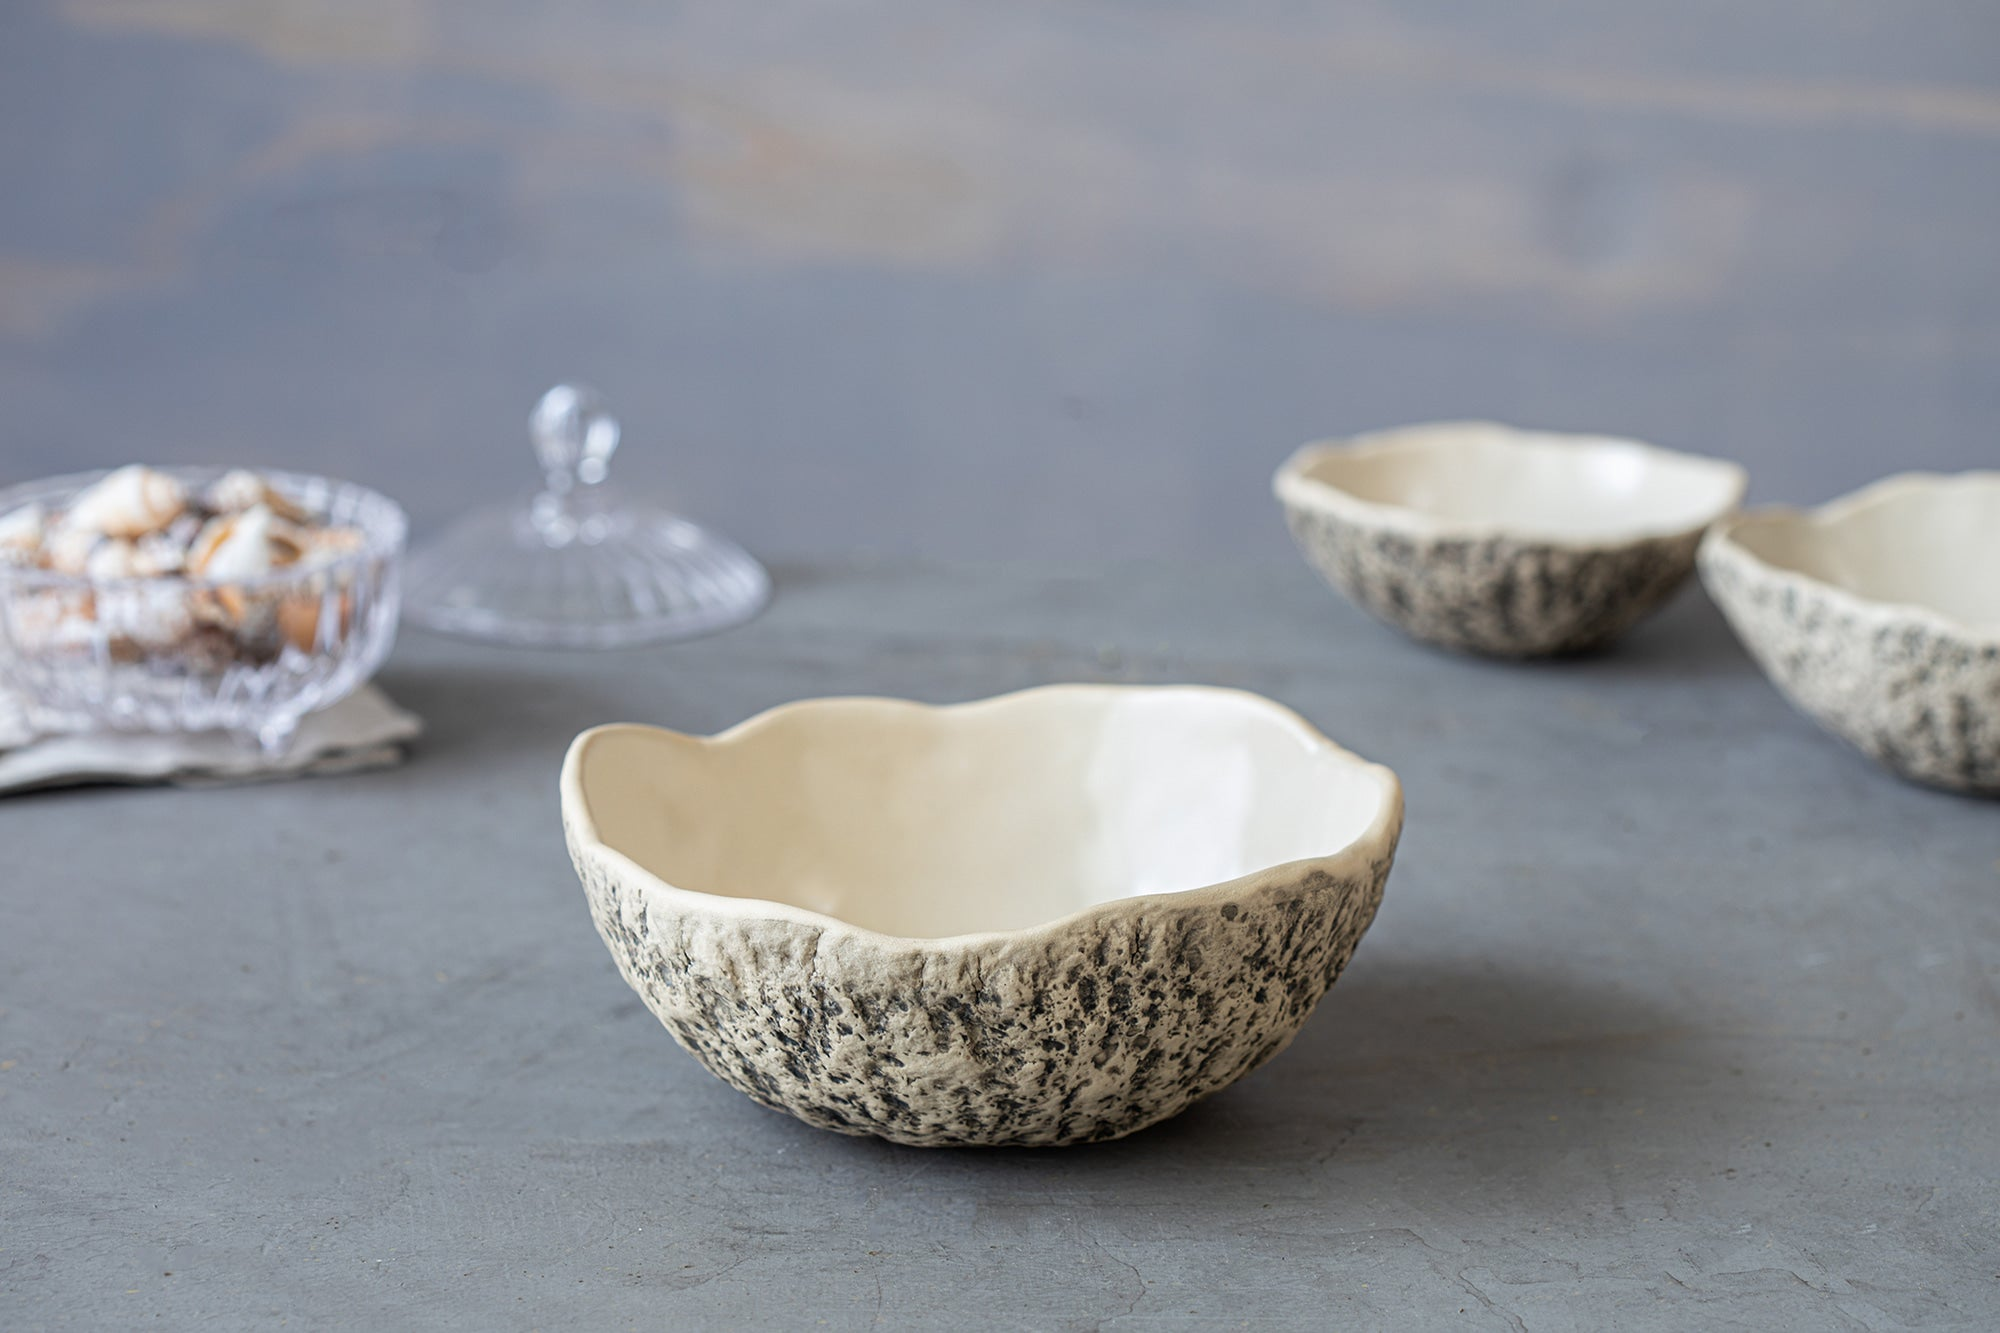 Handmade pottery soup bowls